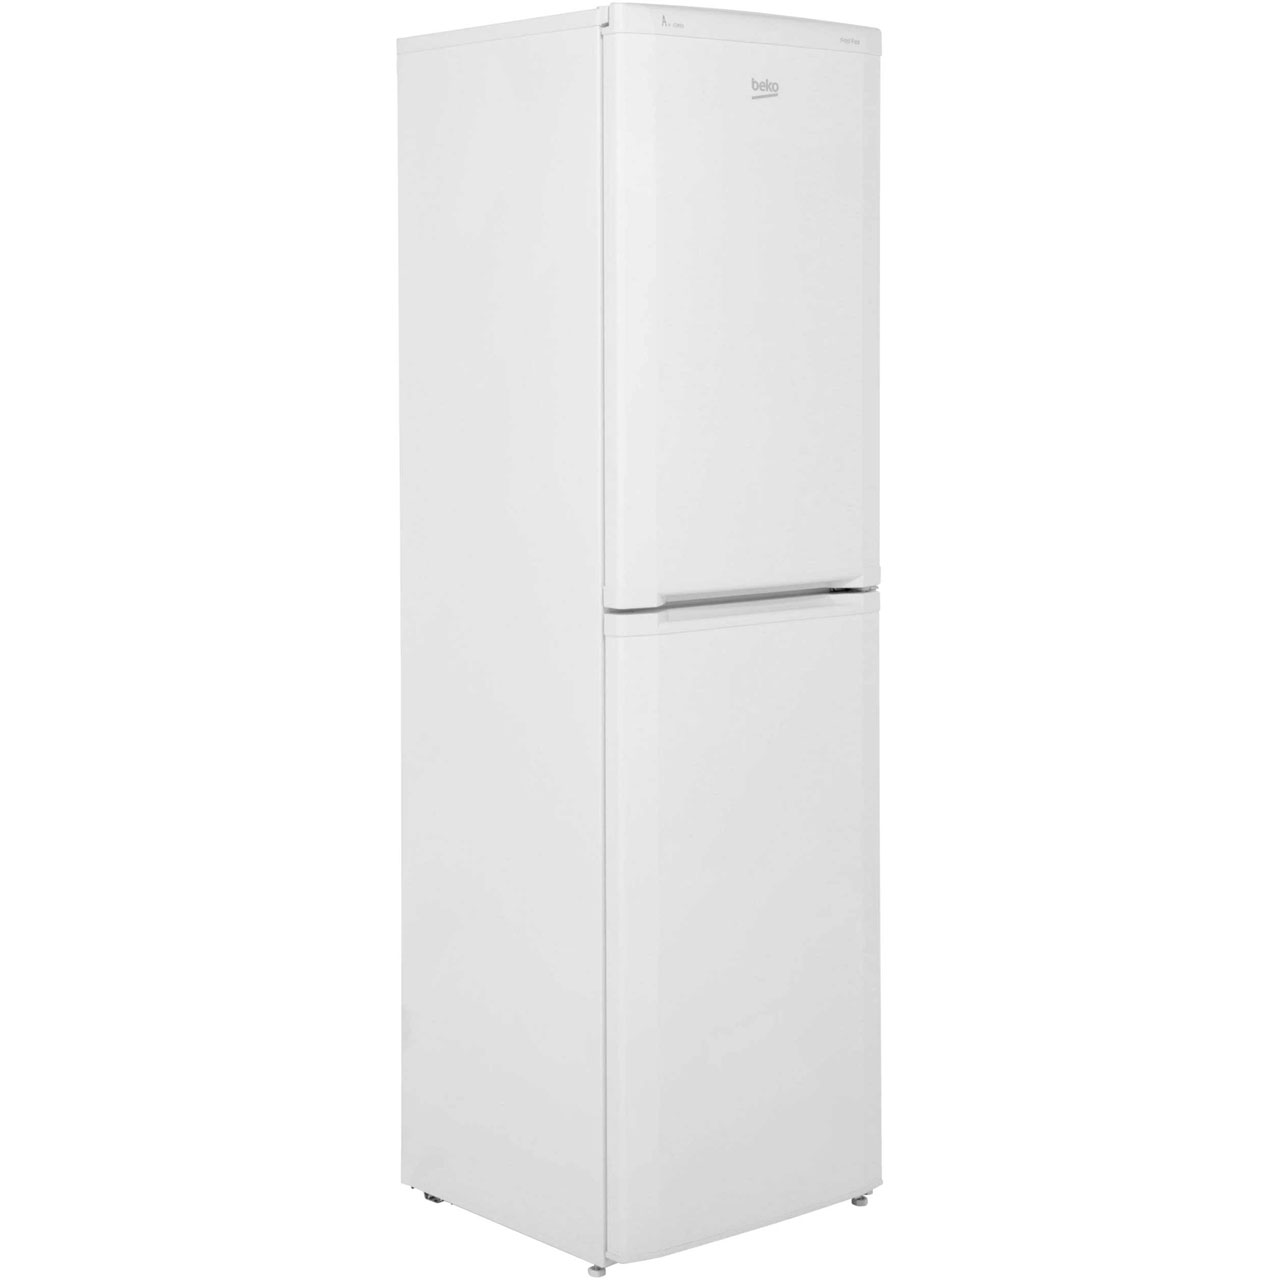 Beko RCF582W Free Standing Fridge Freezer Frost Free in White